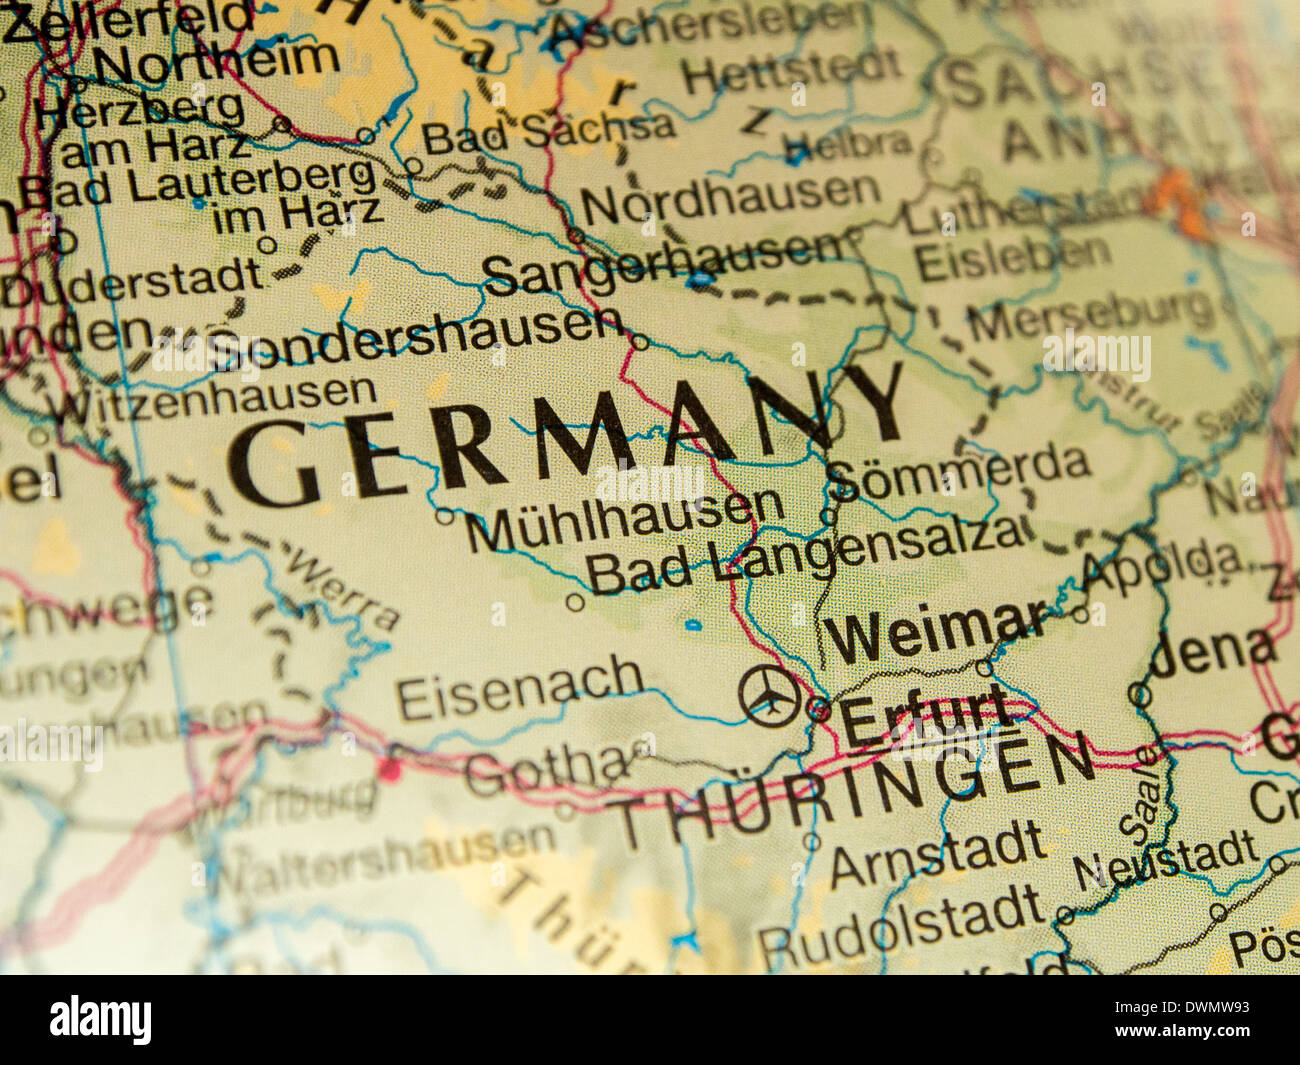 Germany On A Map Close Up Stock Photo: 67456399 - Alamy on england on a map, norway on a map, australia on a map, india on a map, korea on a map, great britain on a map, japan on a map, the netherlands on a map, afghanistan on a map, greece on a map, peru on a map, south america on a map, africa on a map, poland on a map, ireland on a map, world map, russia on a map, caribbean sea on a map, israel on a map, europe on a map,